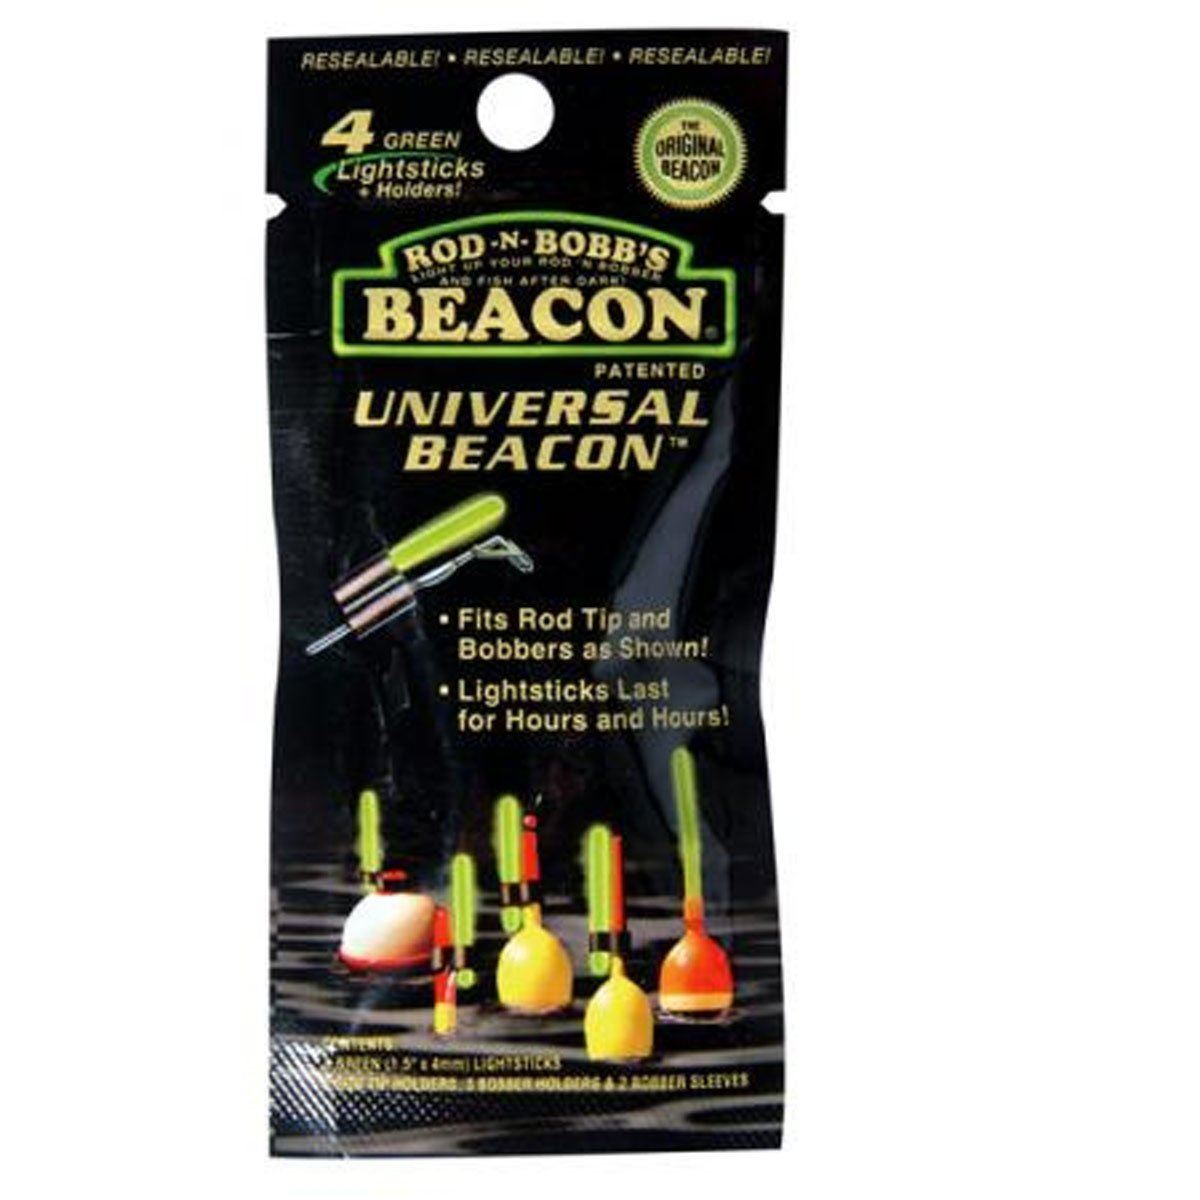 Brand New Universal Beacon Lightstick for Night Fishing Refills, Green, High-quality by